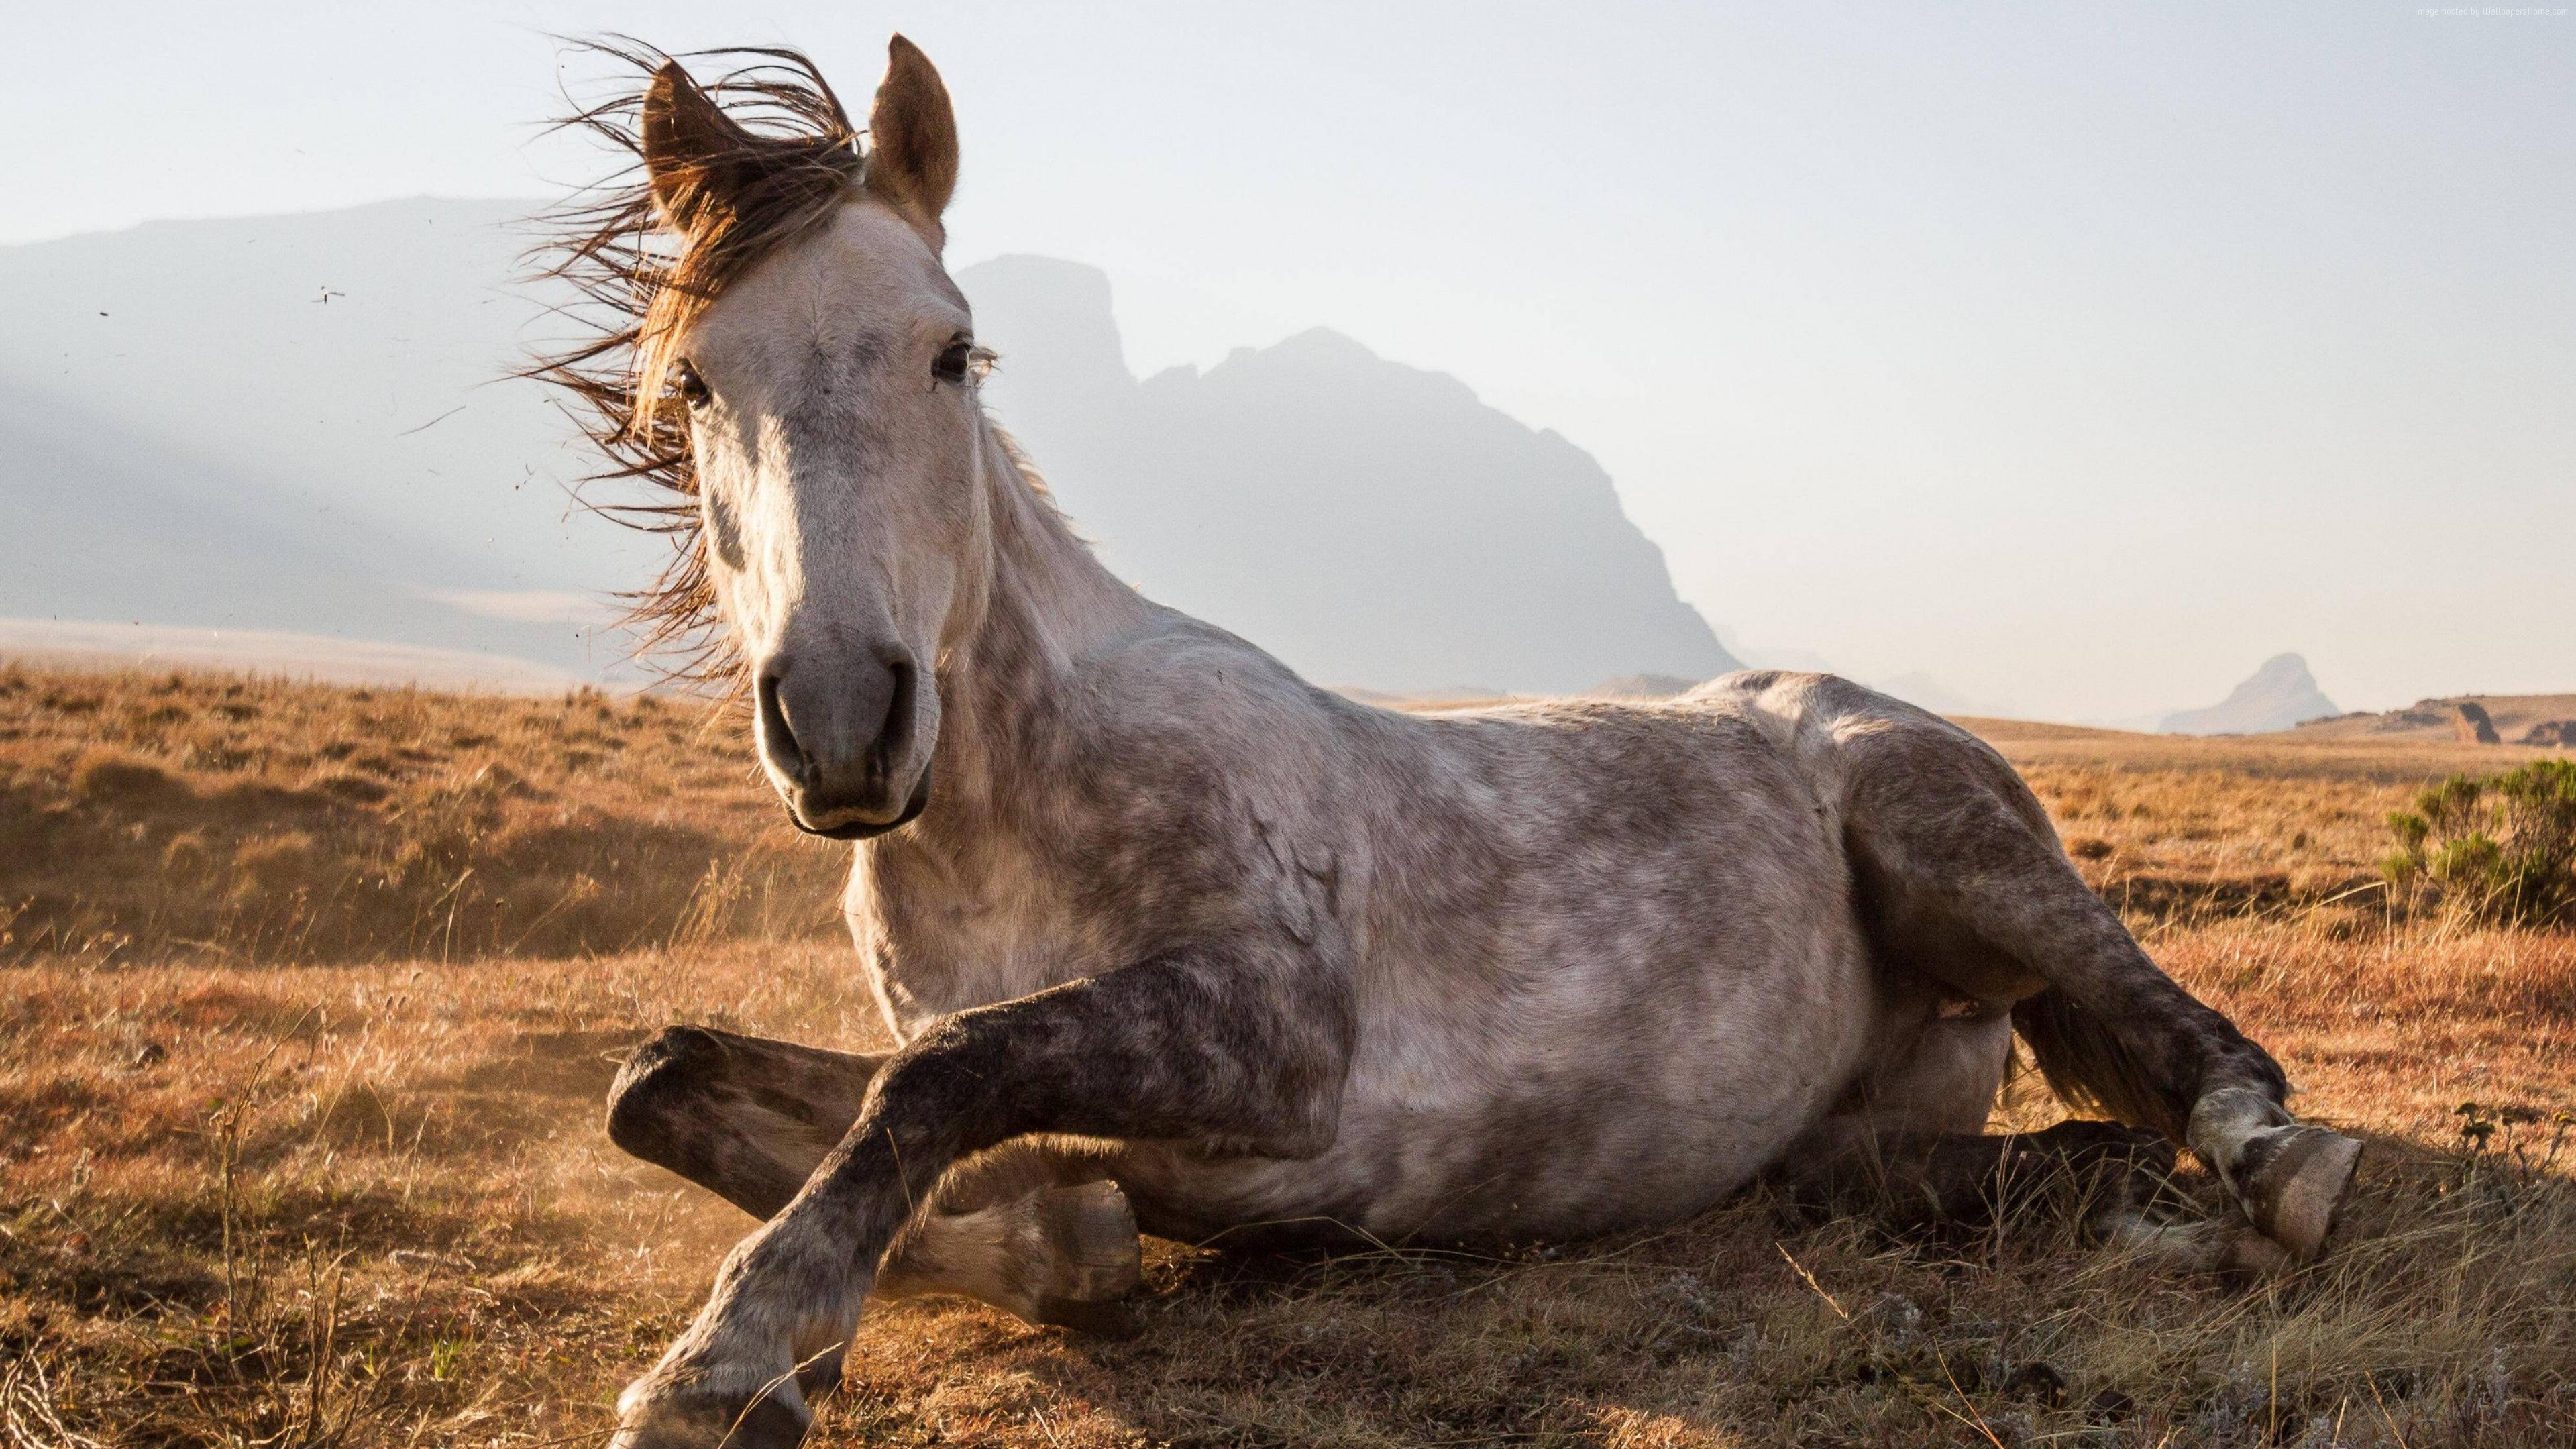 Wallpaper Horse, Sehlabathebe National Park, Lesotho, National Geographic Traveler Photo Contest, Animals